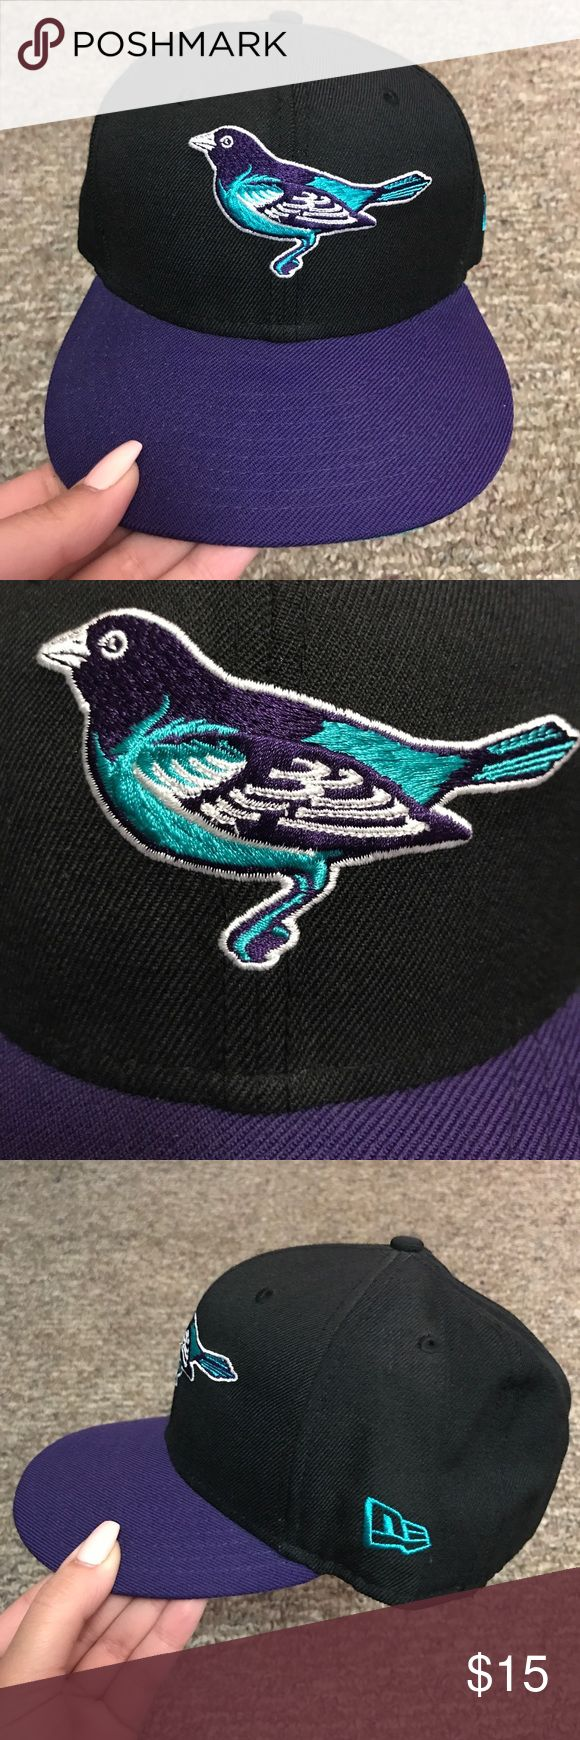 """MLB """"Baltimore Orioles"""" (O's) Fitted Hat -New Era Black, Purple, Teal & White MLB """"Baltimore Orioles"""" (O's) 59FIFTY Fitted Hat -New Era New Era Accessories Hats"""